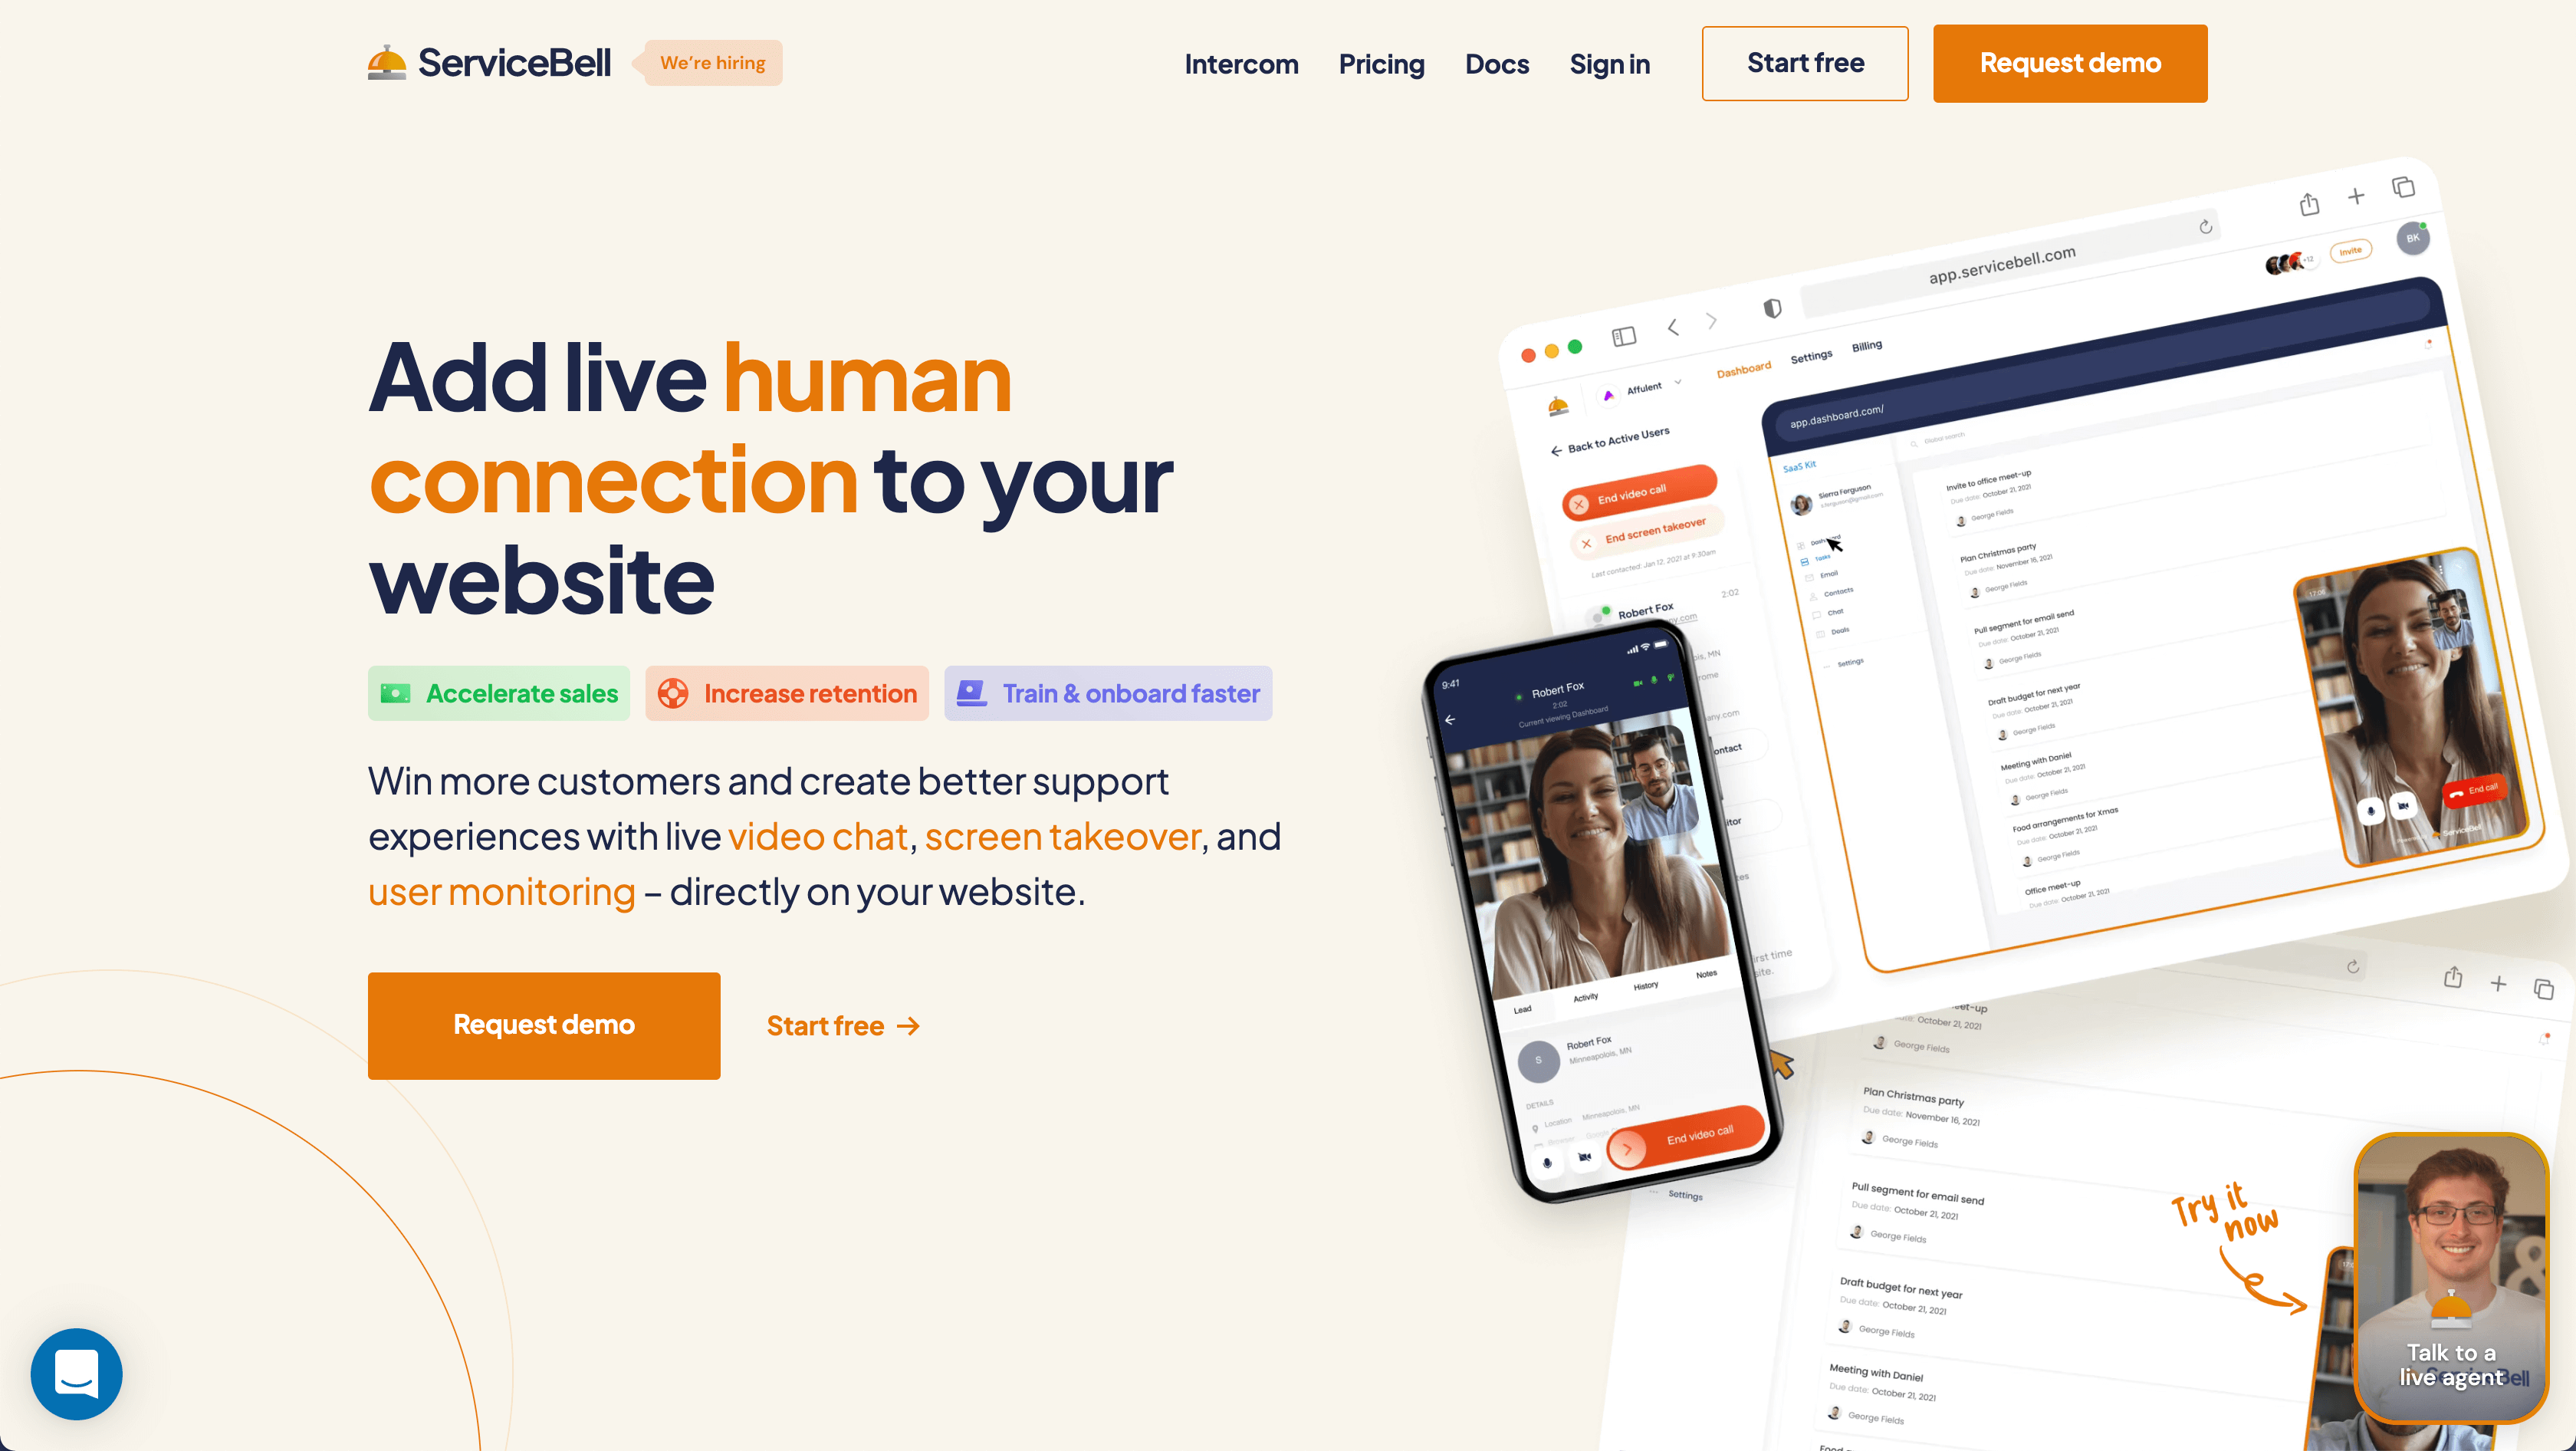 servicebell live video chat and screen takeover